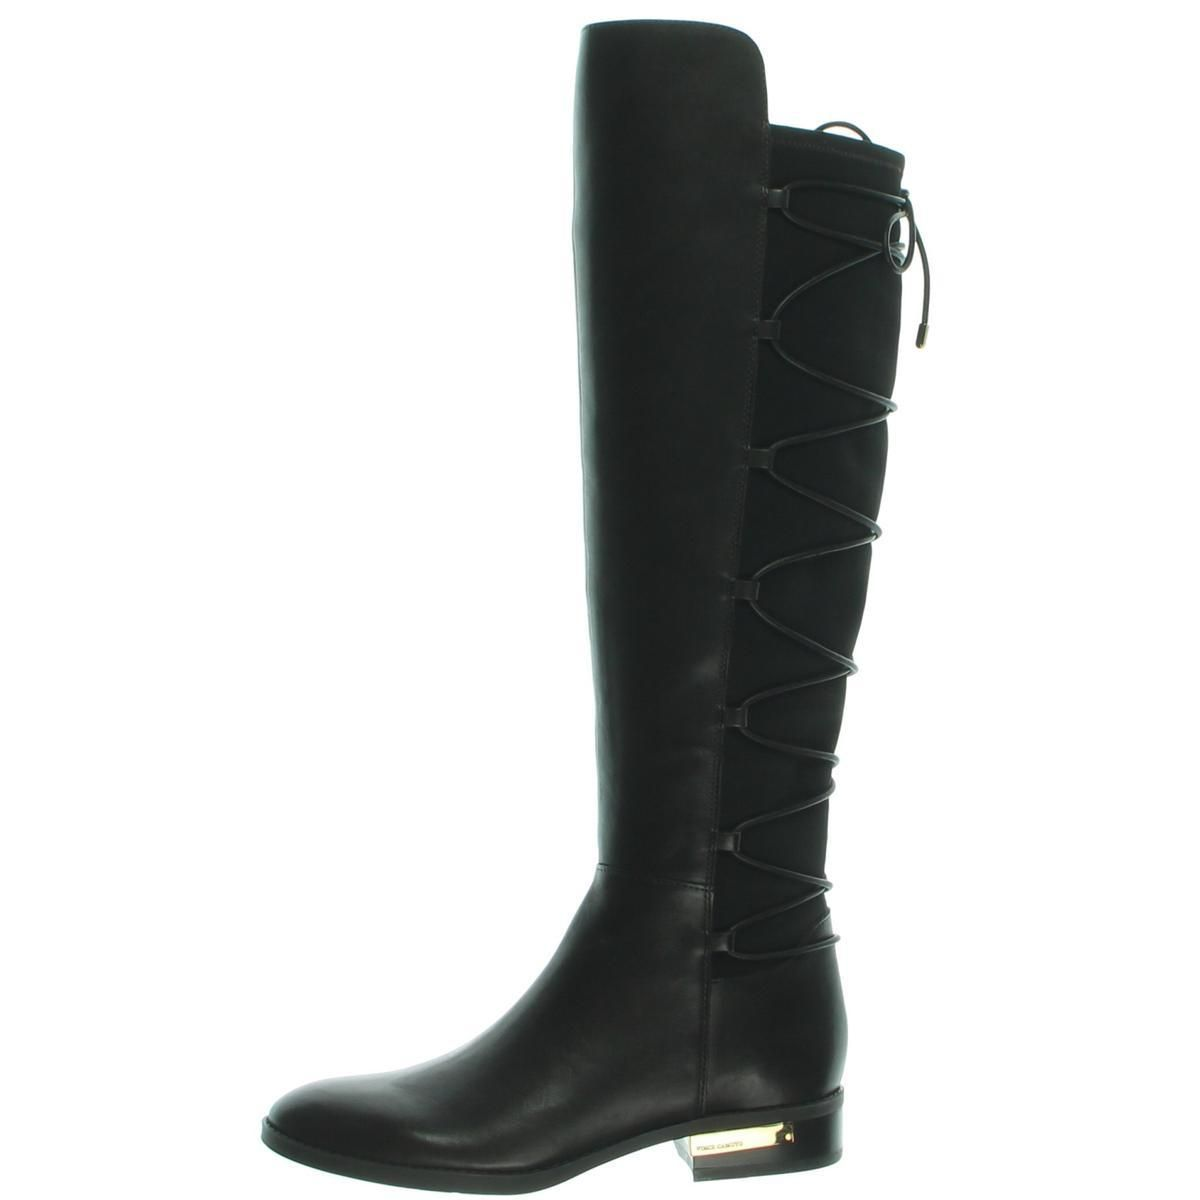 e30a5332de3 Vince Camuto Womens Parle Leather Knee-High Riding Boots